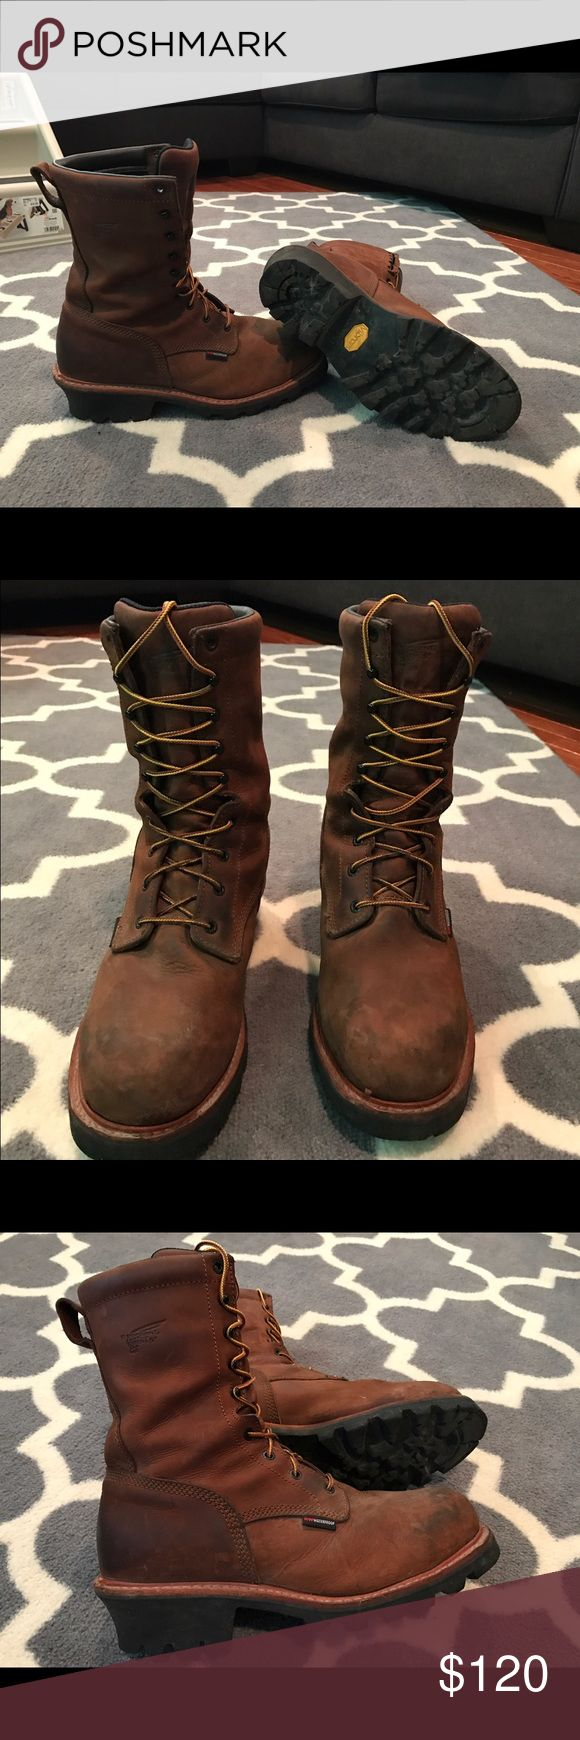 Red Wings logger boots Pair of Red Wing logger boots. 11.5, steel toe, waterproof, 8 inch. Good condition very clean barley broken in. Never worn on the job. Red Wing Shoes Shoes Boots